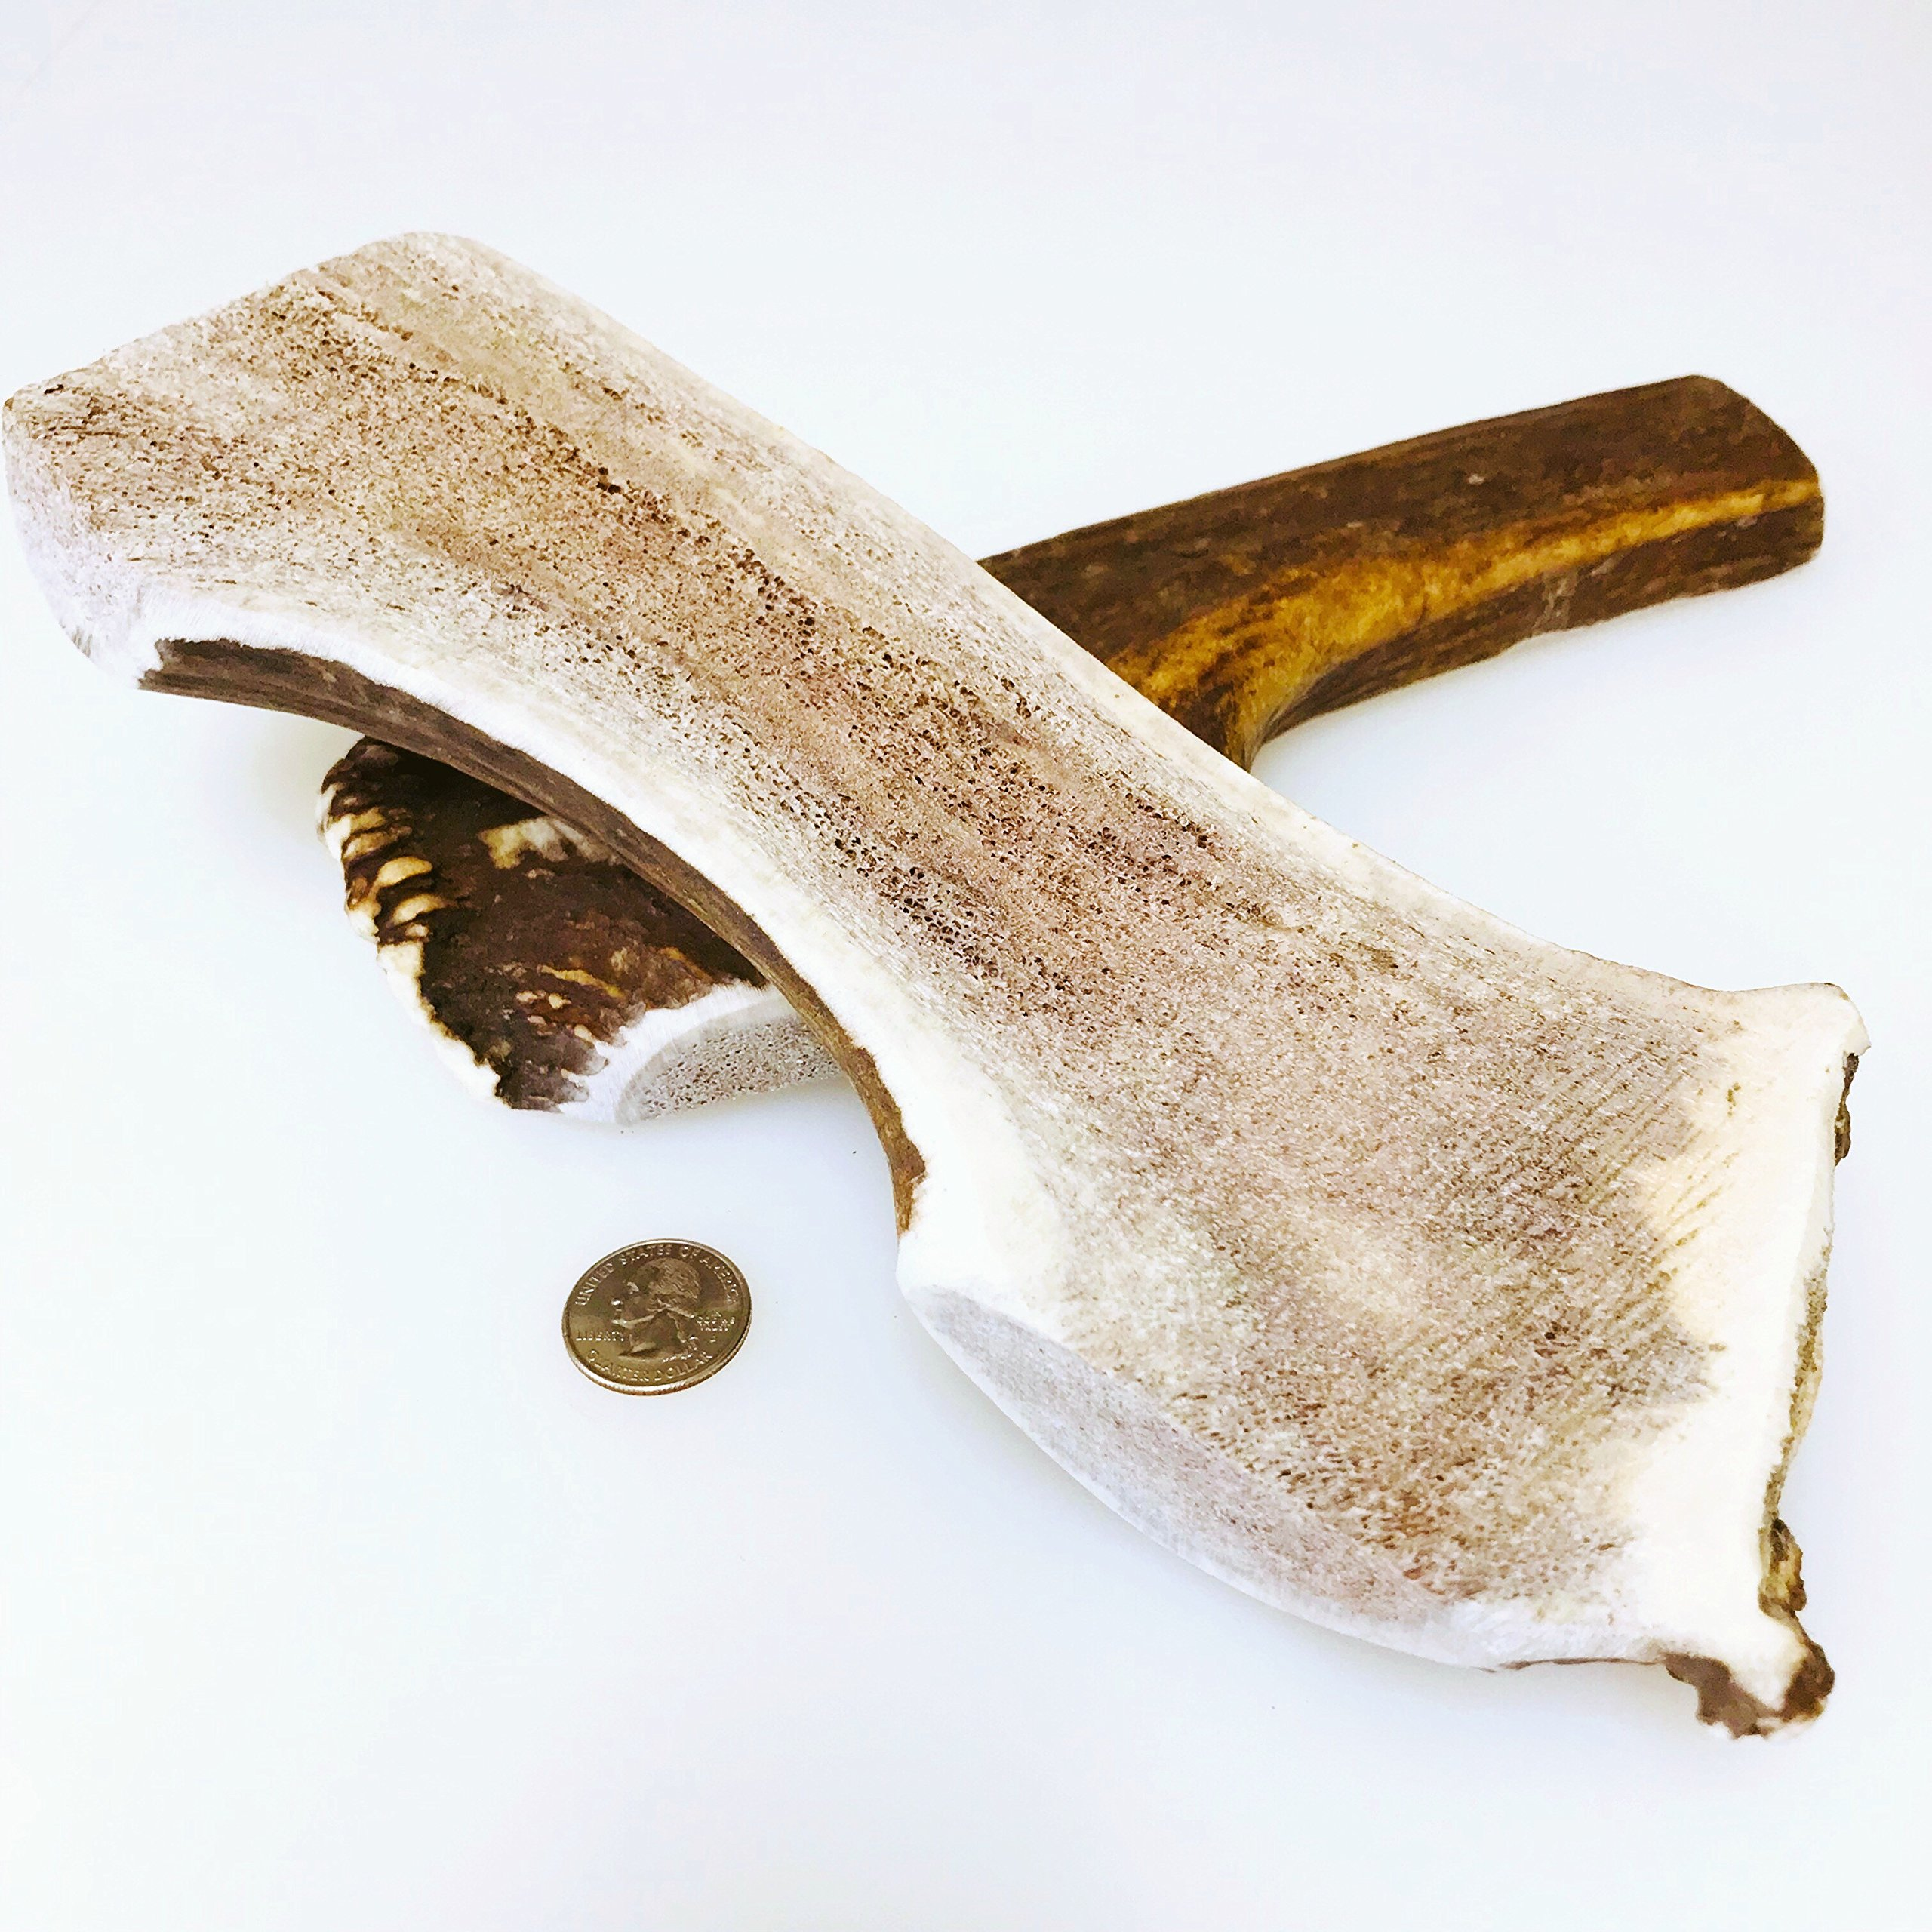 Mountain Dog Chews Mammoth Split Elk Antler Dog Chew 10-12 long & typically 14-16 ounces! Freshest and Largest Antlers At The lowest Price!!